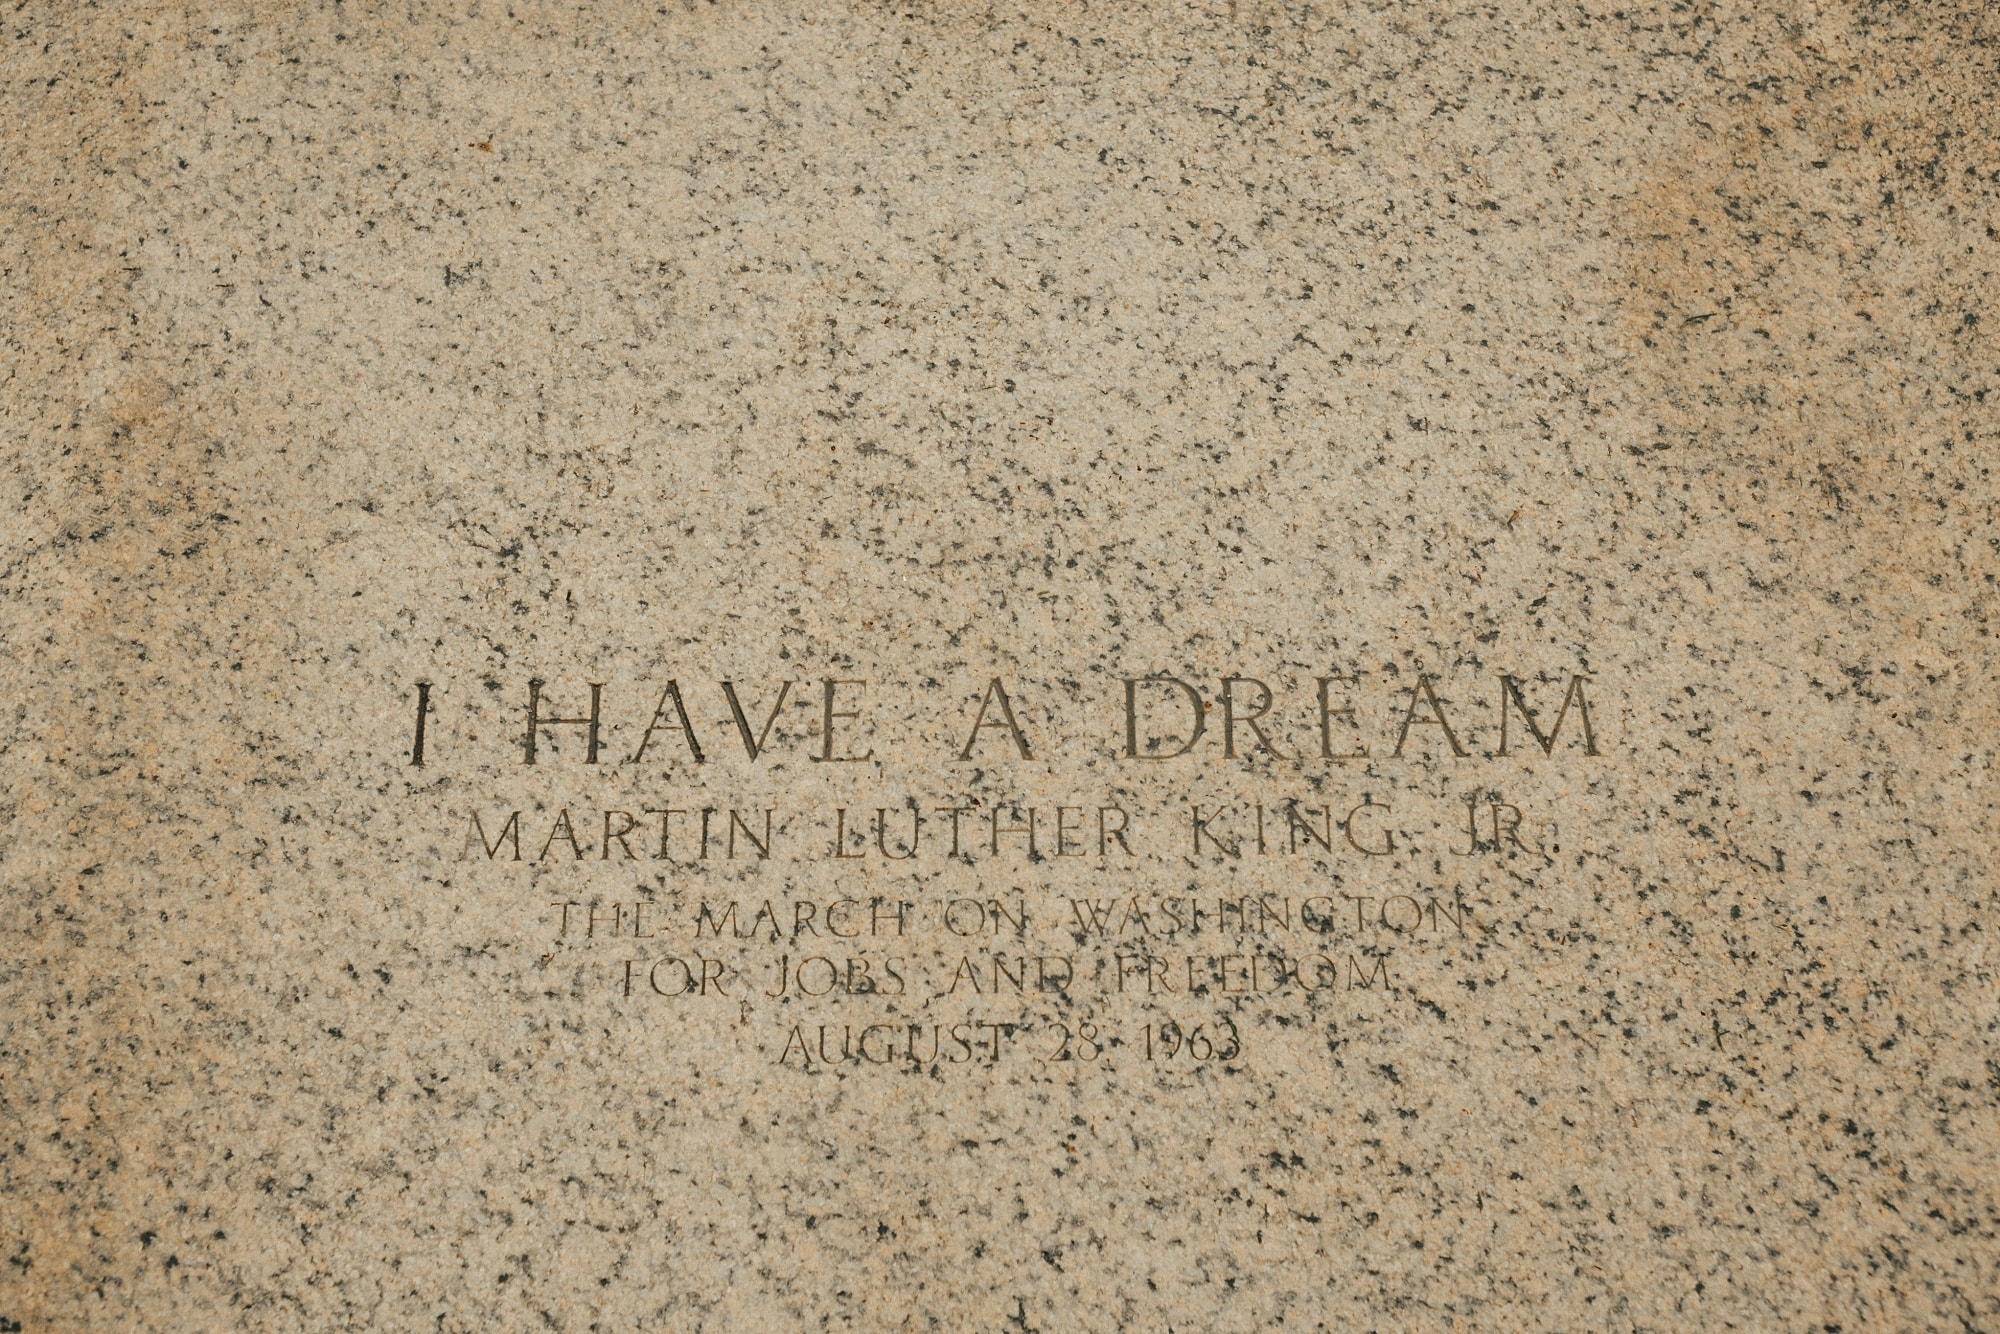 Martin Luther King I have a dream plaque at Lincoln Memorial